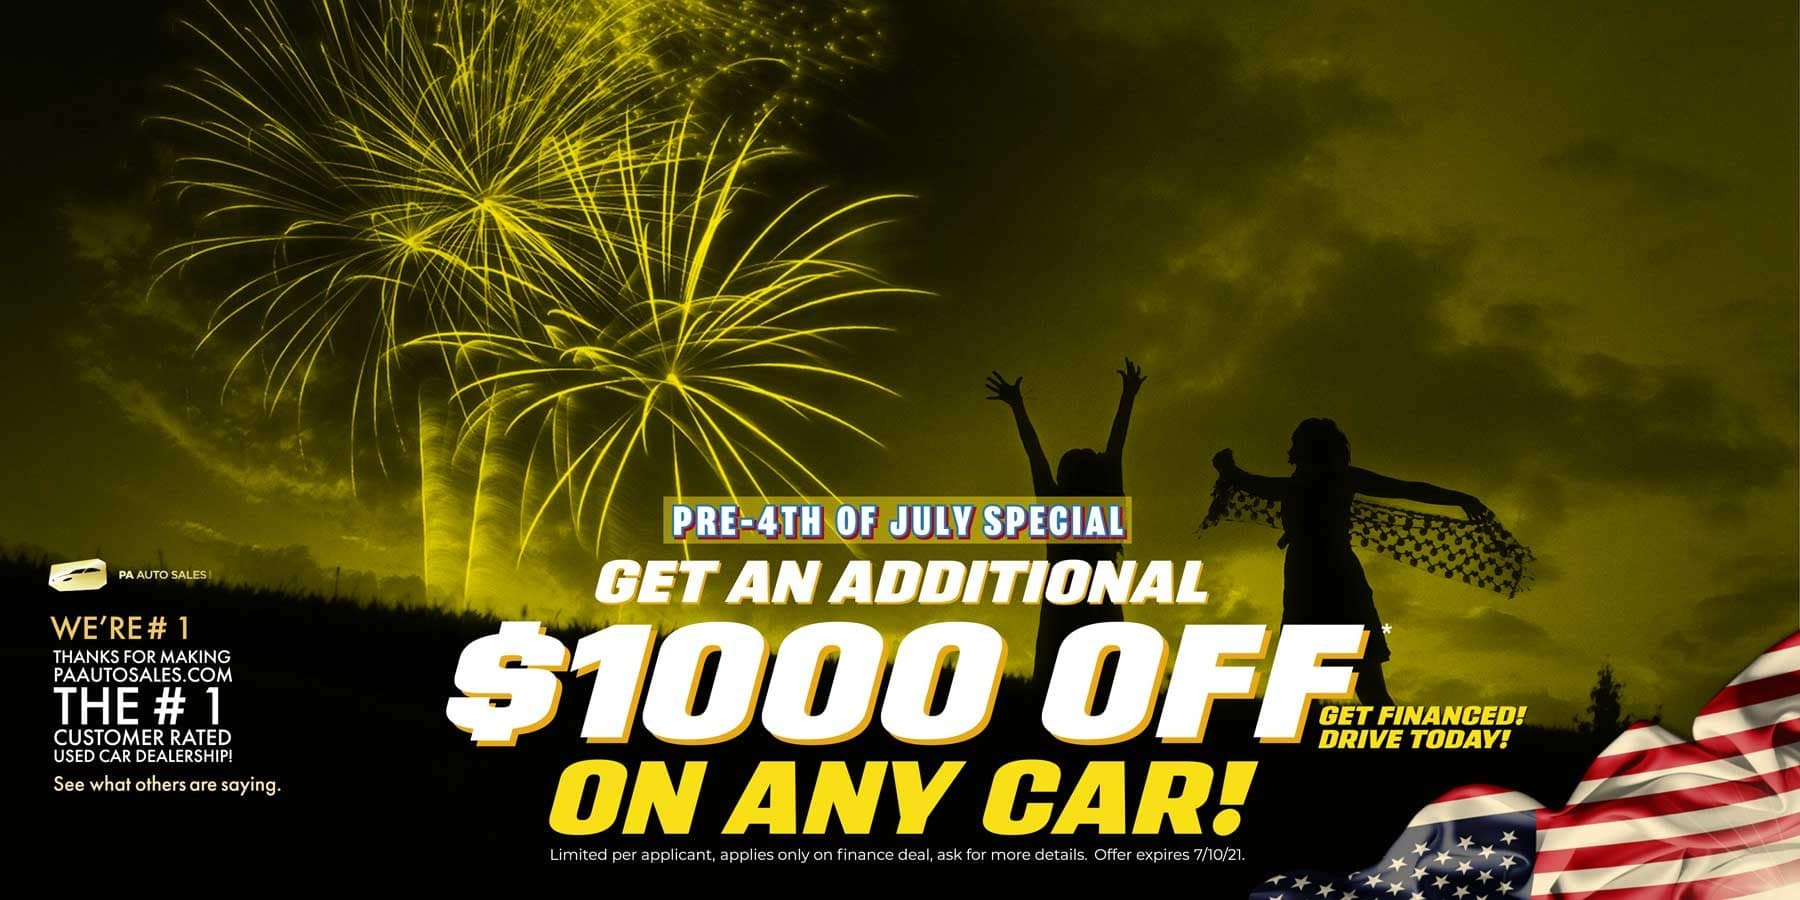 The 4th of July. $1,000 Off On Any Car! Any Finance Deal!